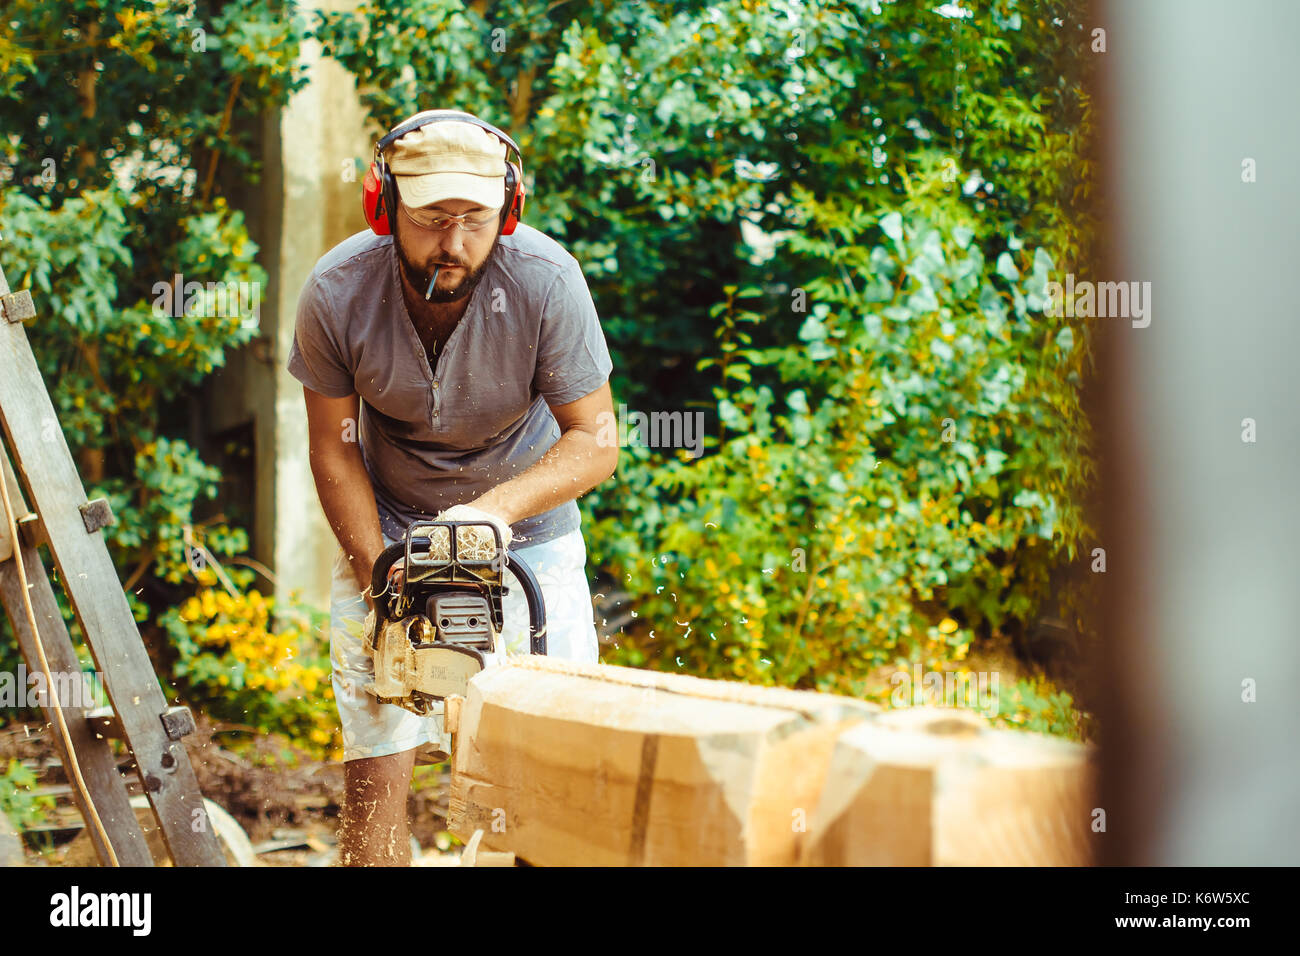 logger chainsaw stockfotos logger chainsaw bilder alamy. Black Bedroom Furniture Sets. Home Design Ideas